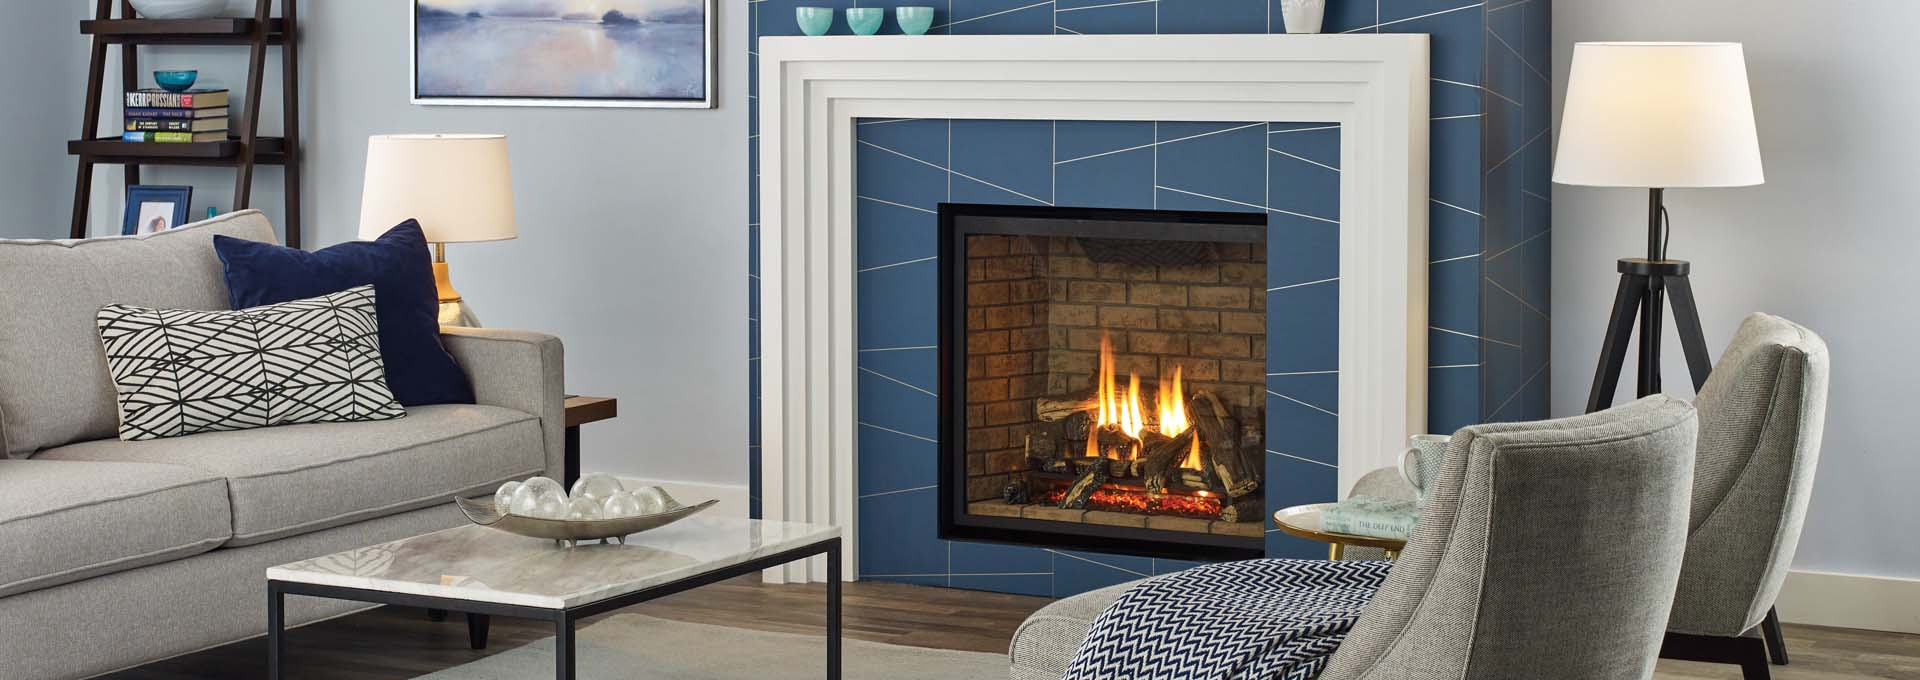 G800 Large Traditional Gas Fireplace from Regency